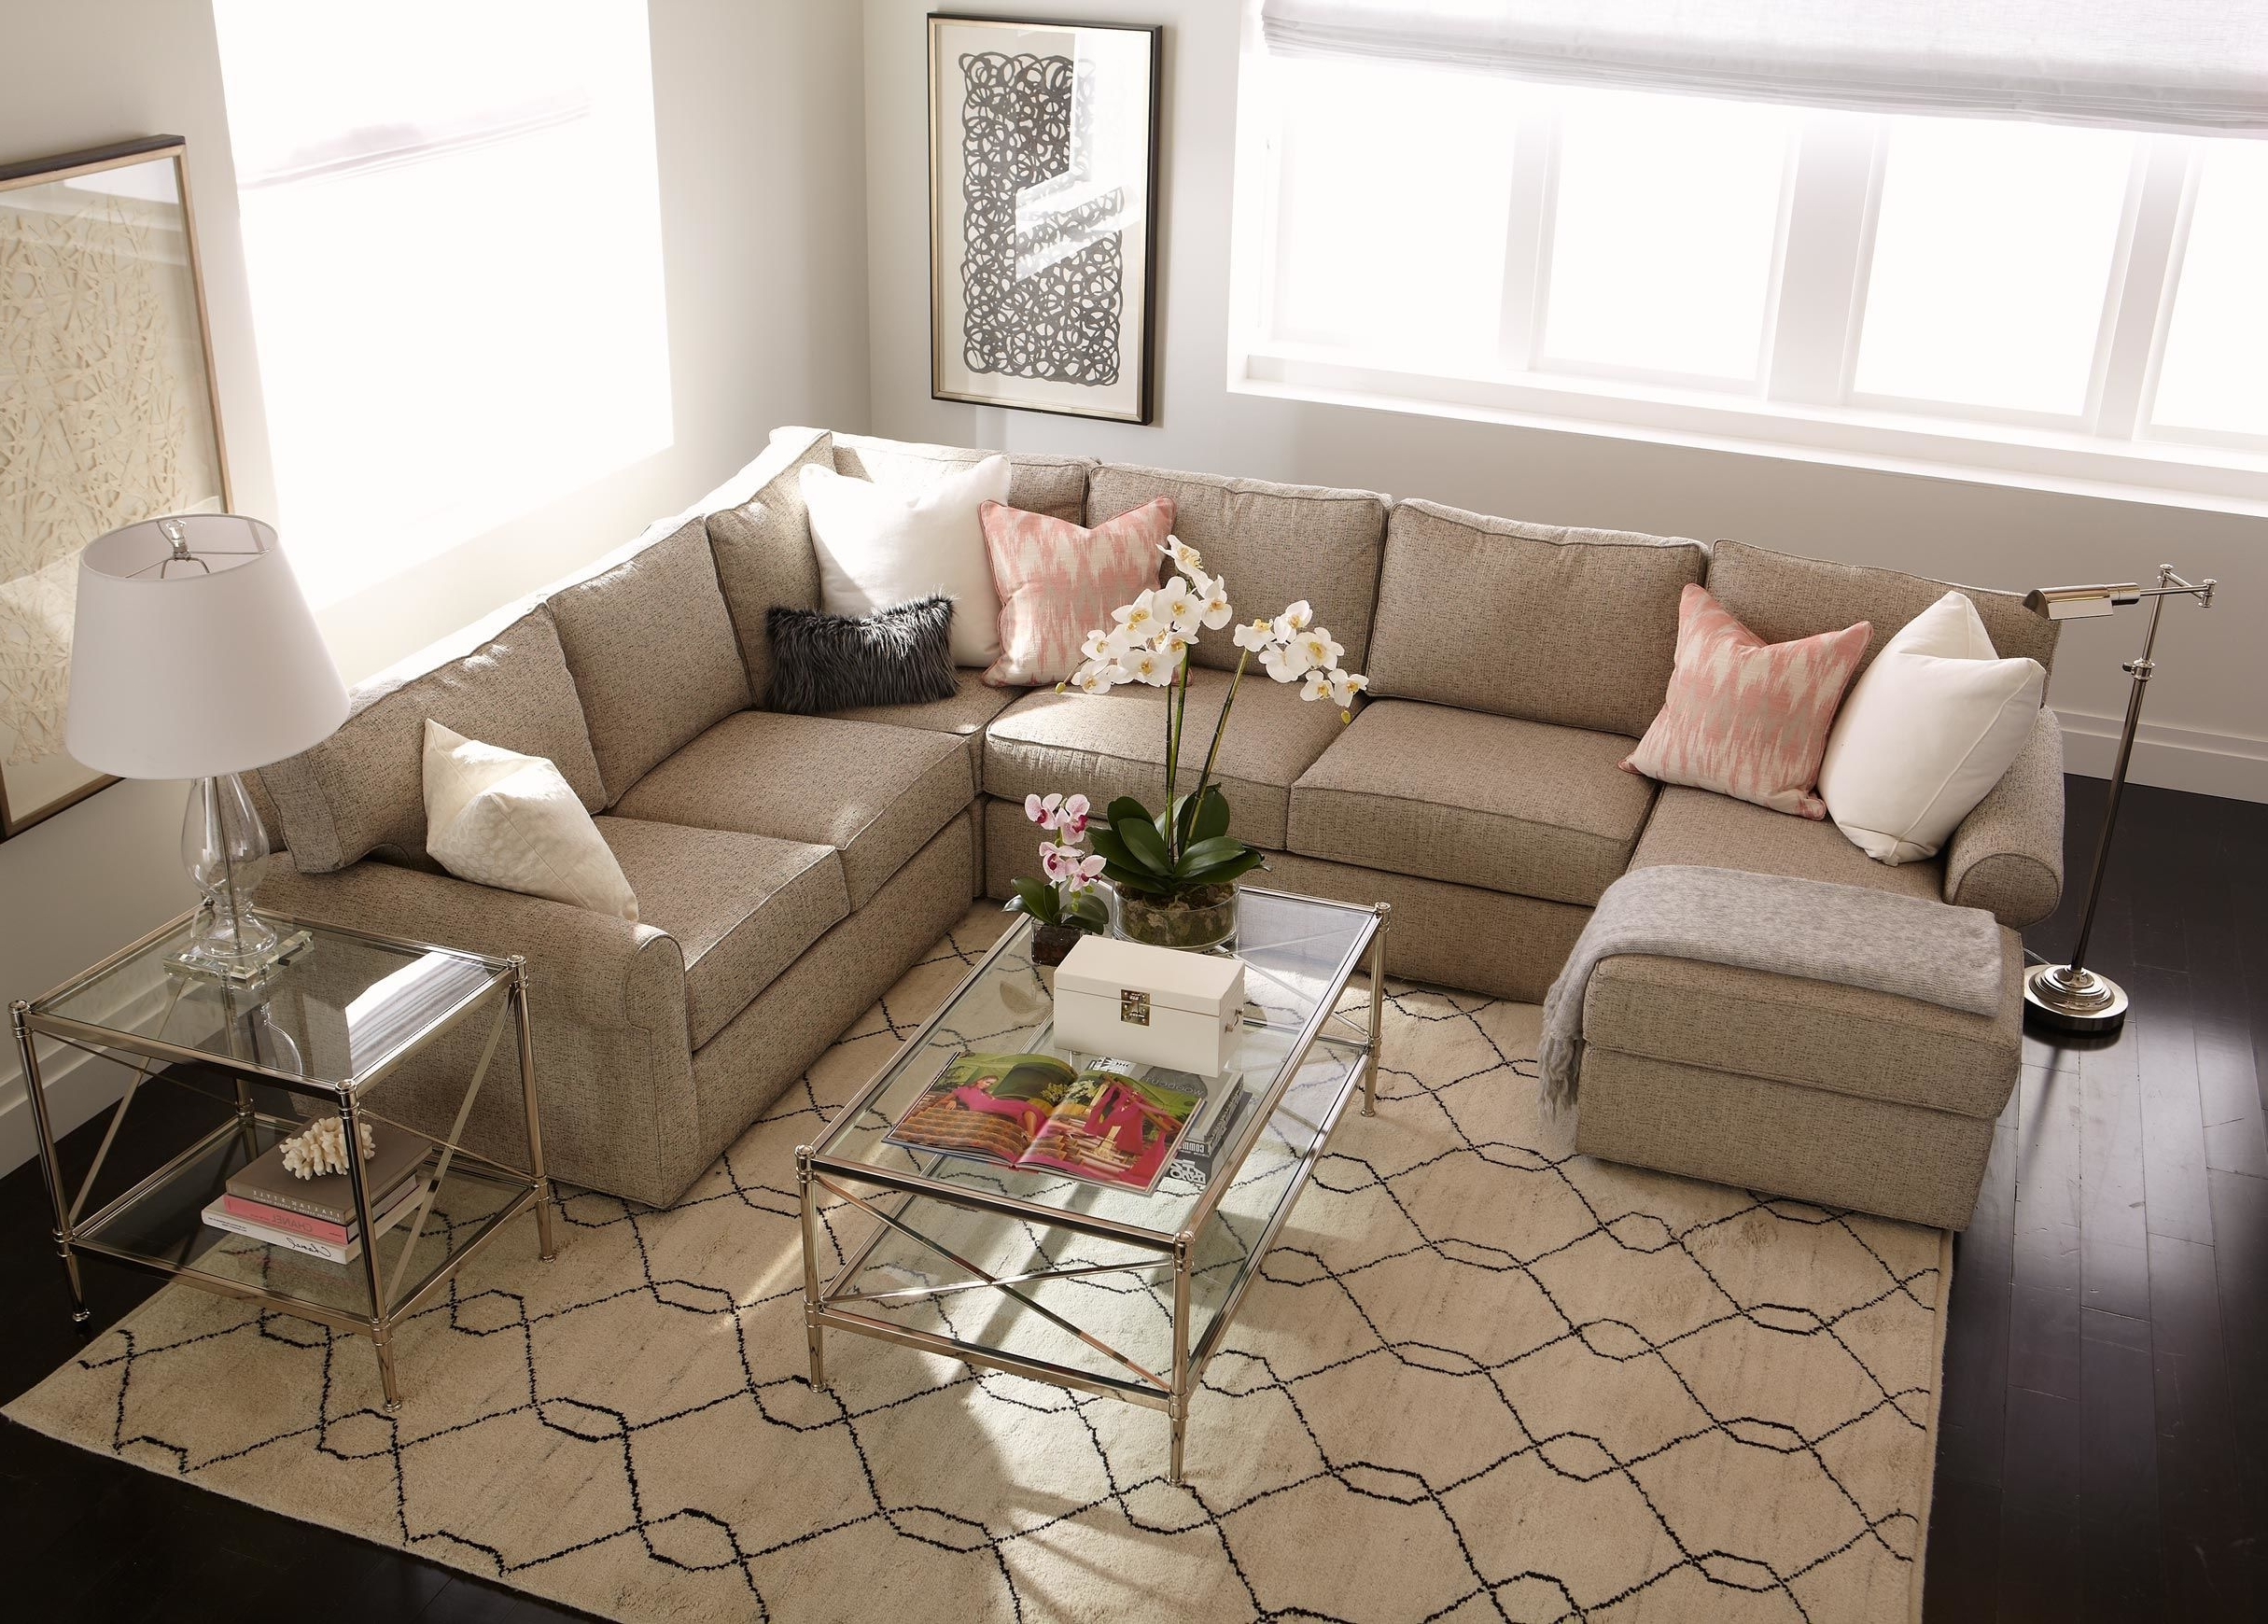 Most Recently Released Down Sectional Sofas Regarding Sofa : Down Filled Modern Sofa Down Filled Sofa With Chaise Down (View 15 of 20)